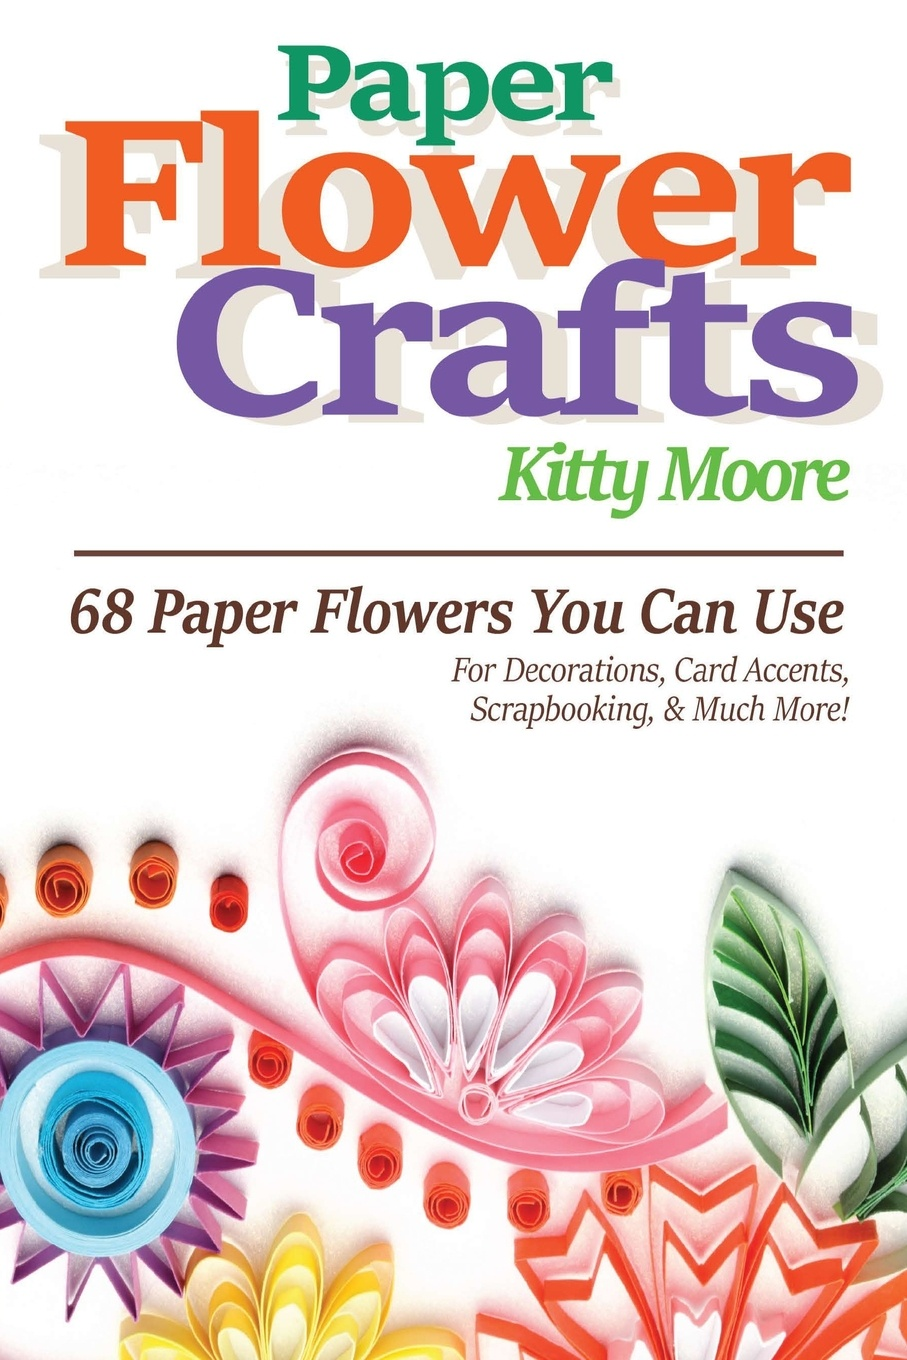 Kitty Moore Paper Flower Crafts (2nd Edition). 68 Paper Flowers You Can Use For Decorations, Card Accents, Scrapbooking, & Much More! paper crafts a maker